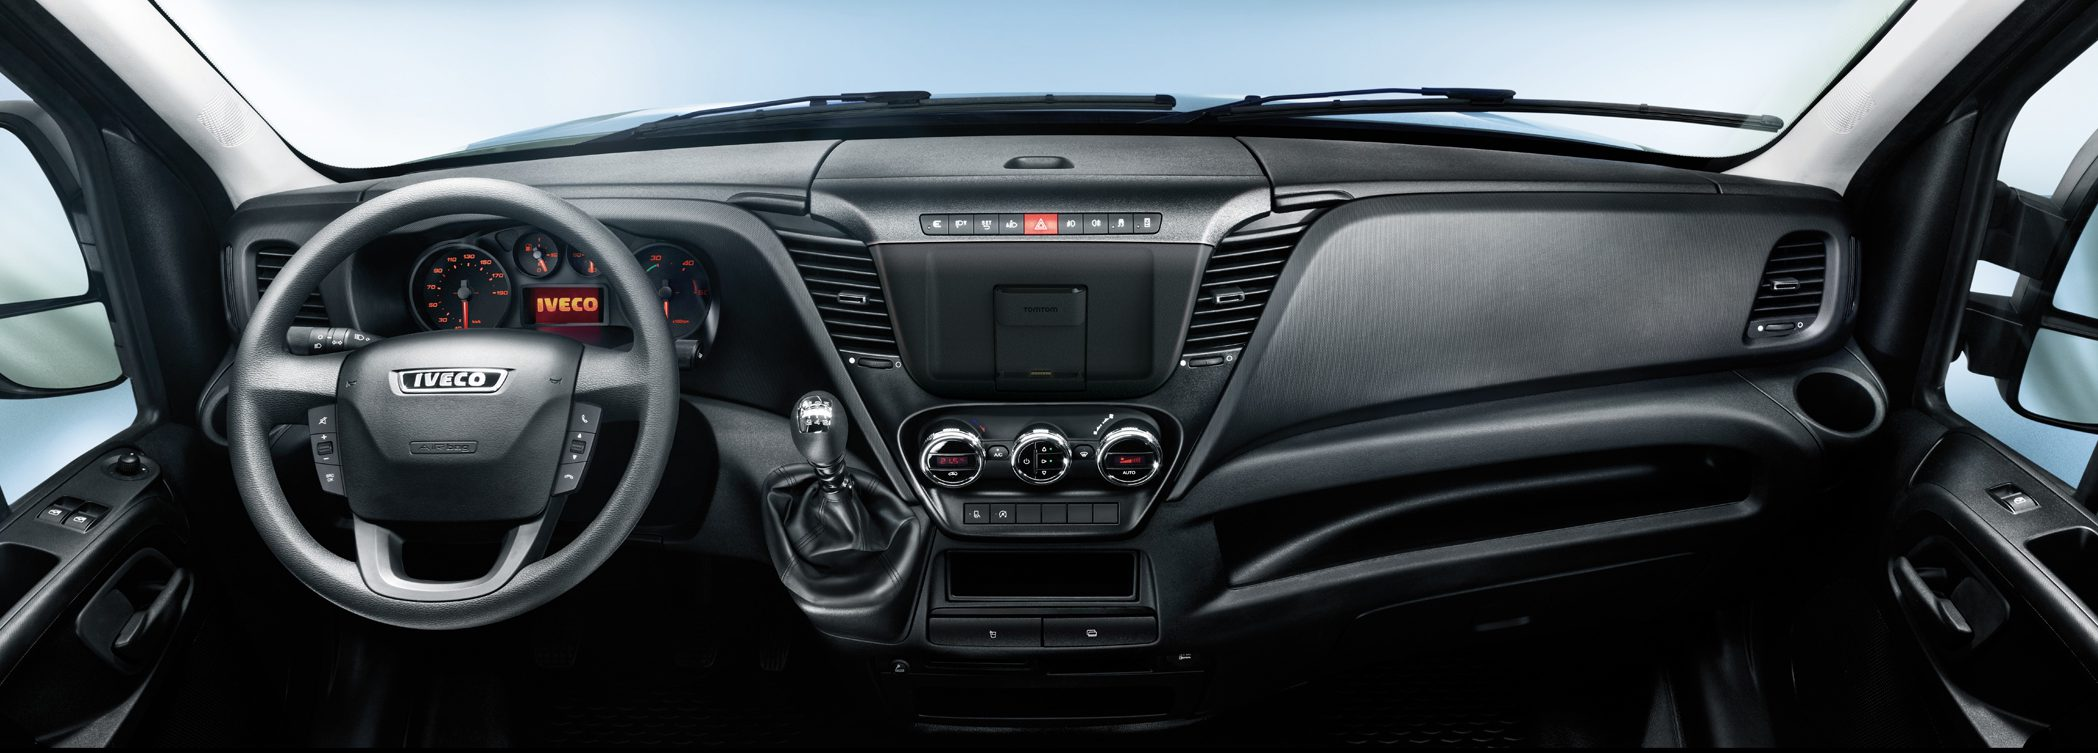 Iveco Docking In Dashboard